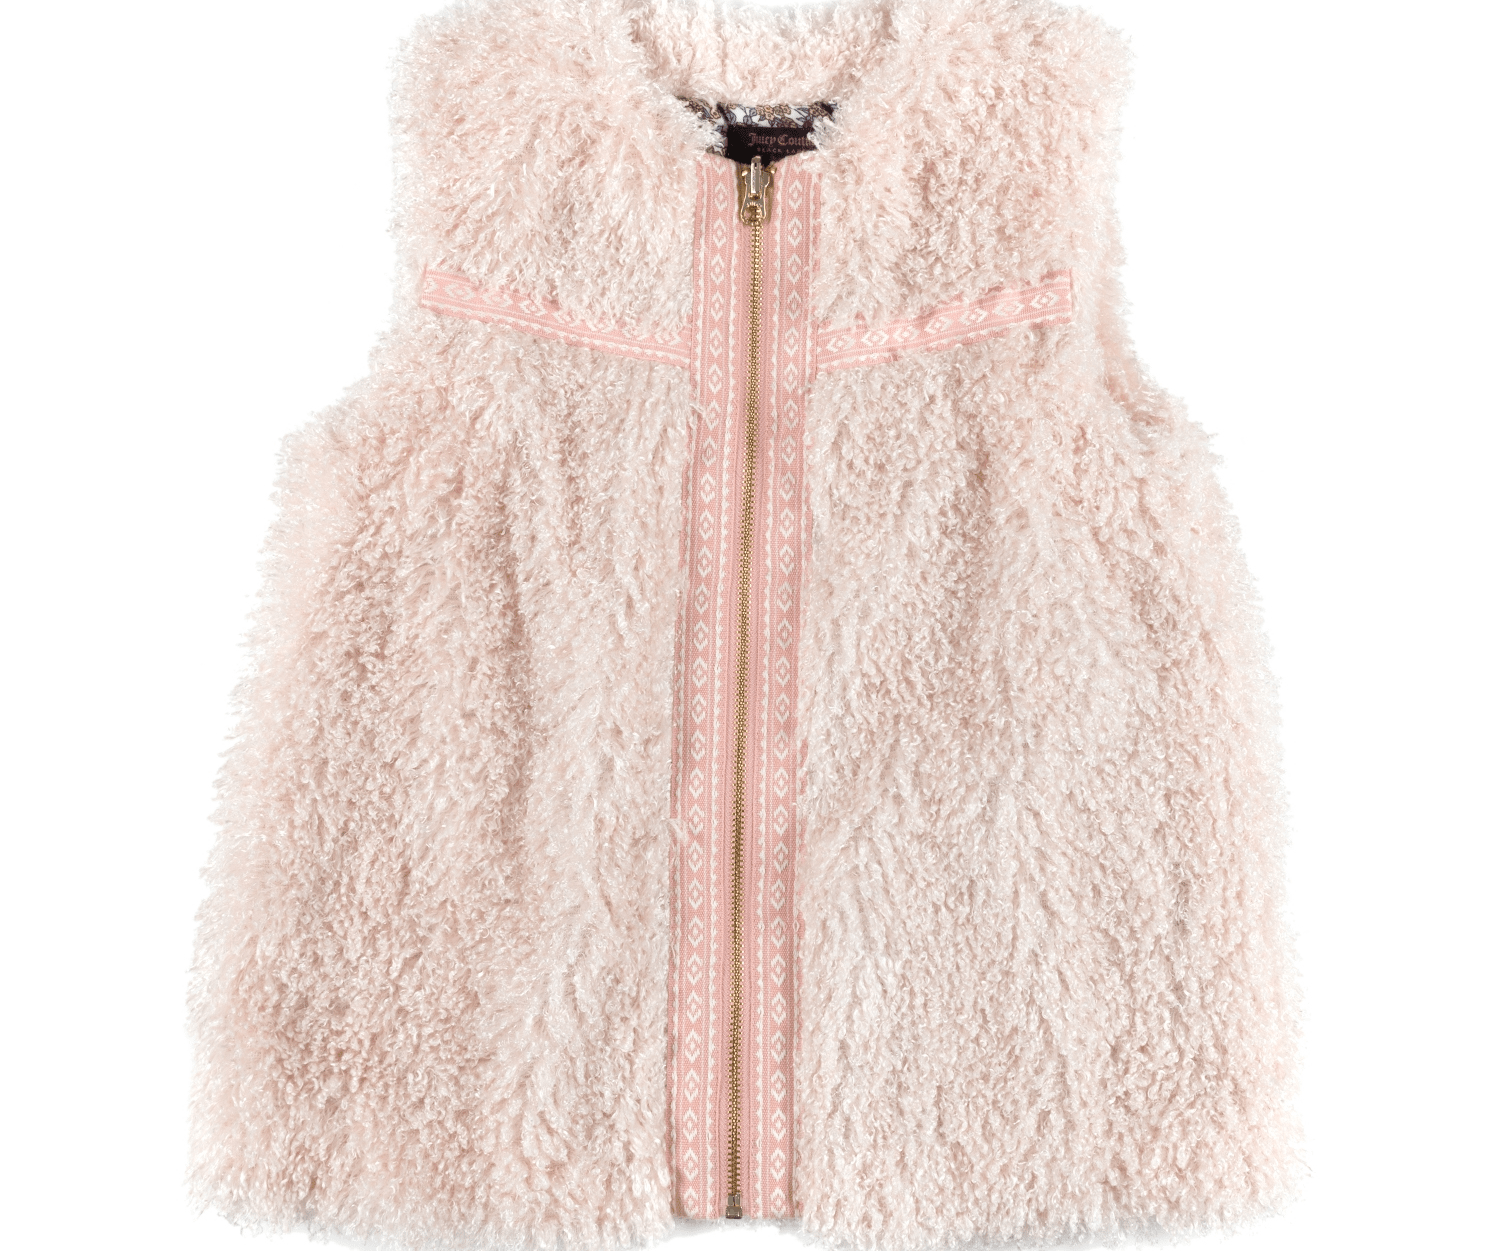 JUICY COUTURE KIDS - Κοριτσίστικο γιλέκο JUICY COUTURE KIDS CURLY FUR VEST ροζ